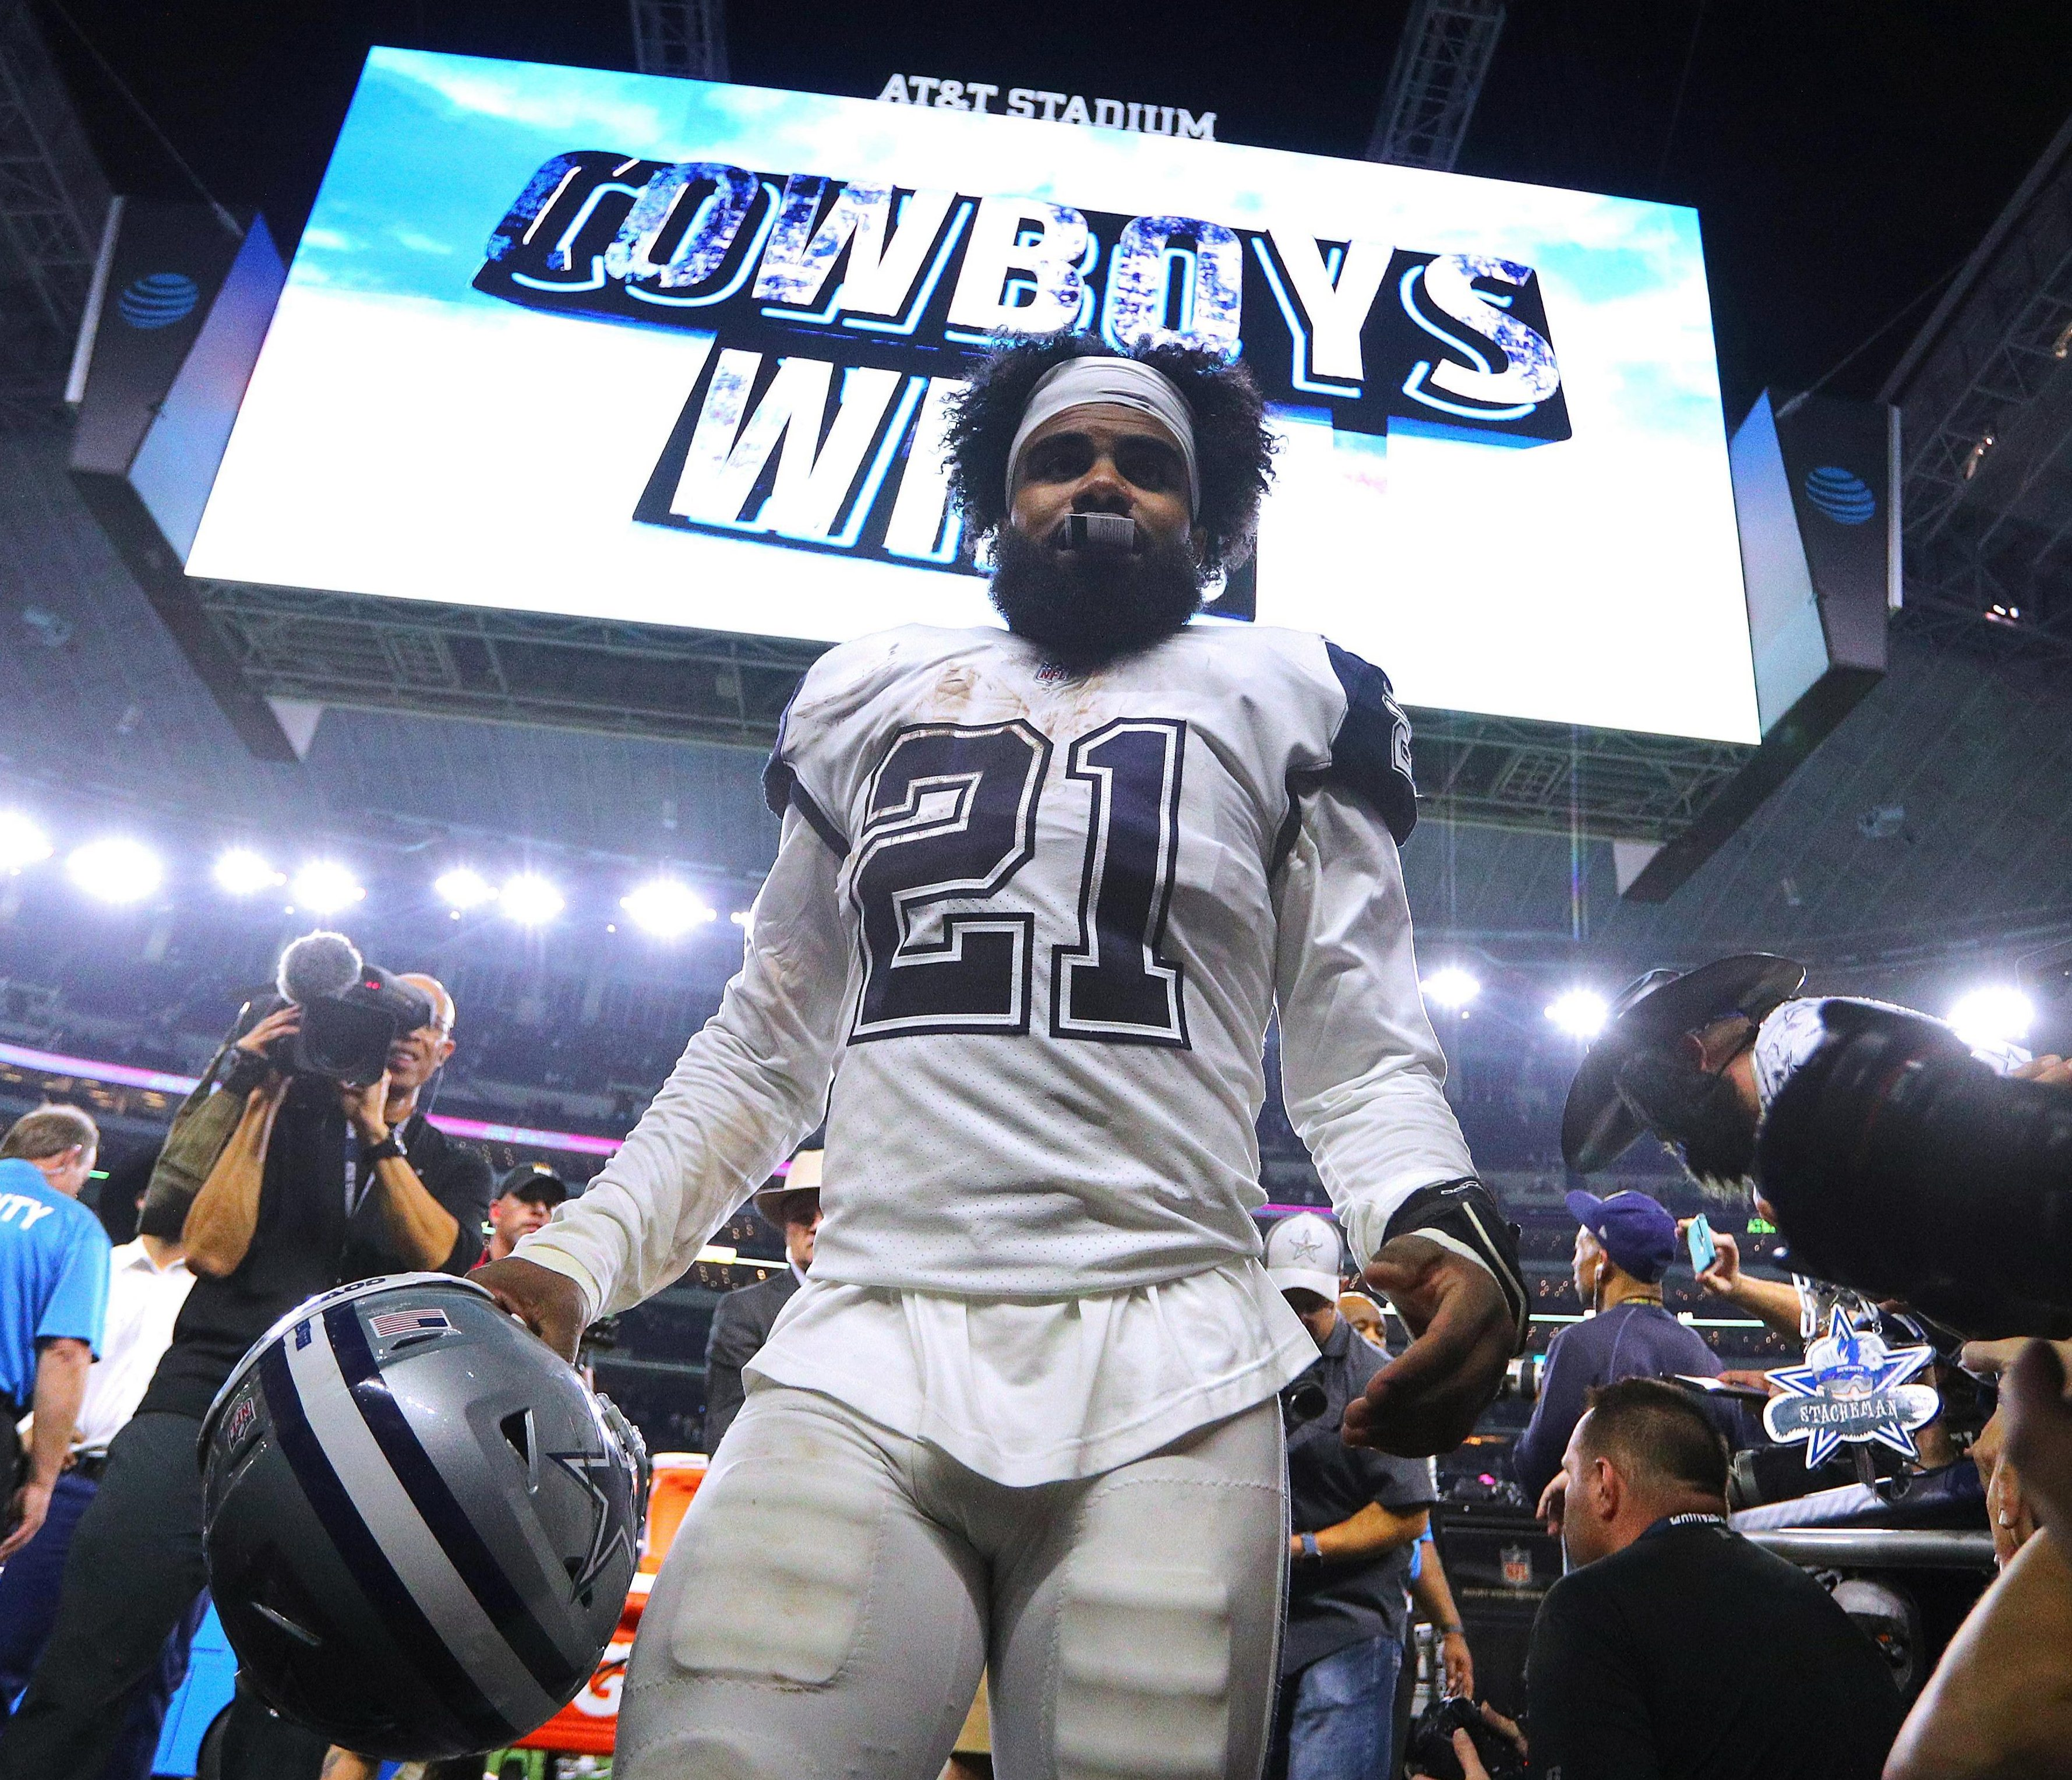 On Sunday night the Eagles face their rivals the Dallas Cowboys - who lead their division